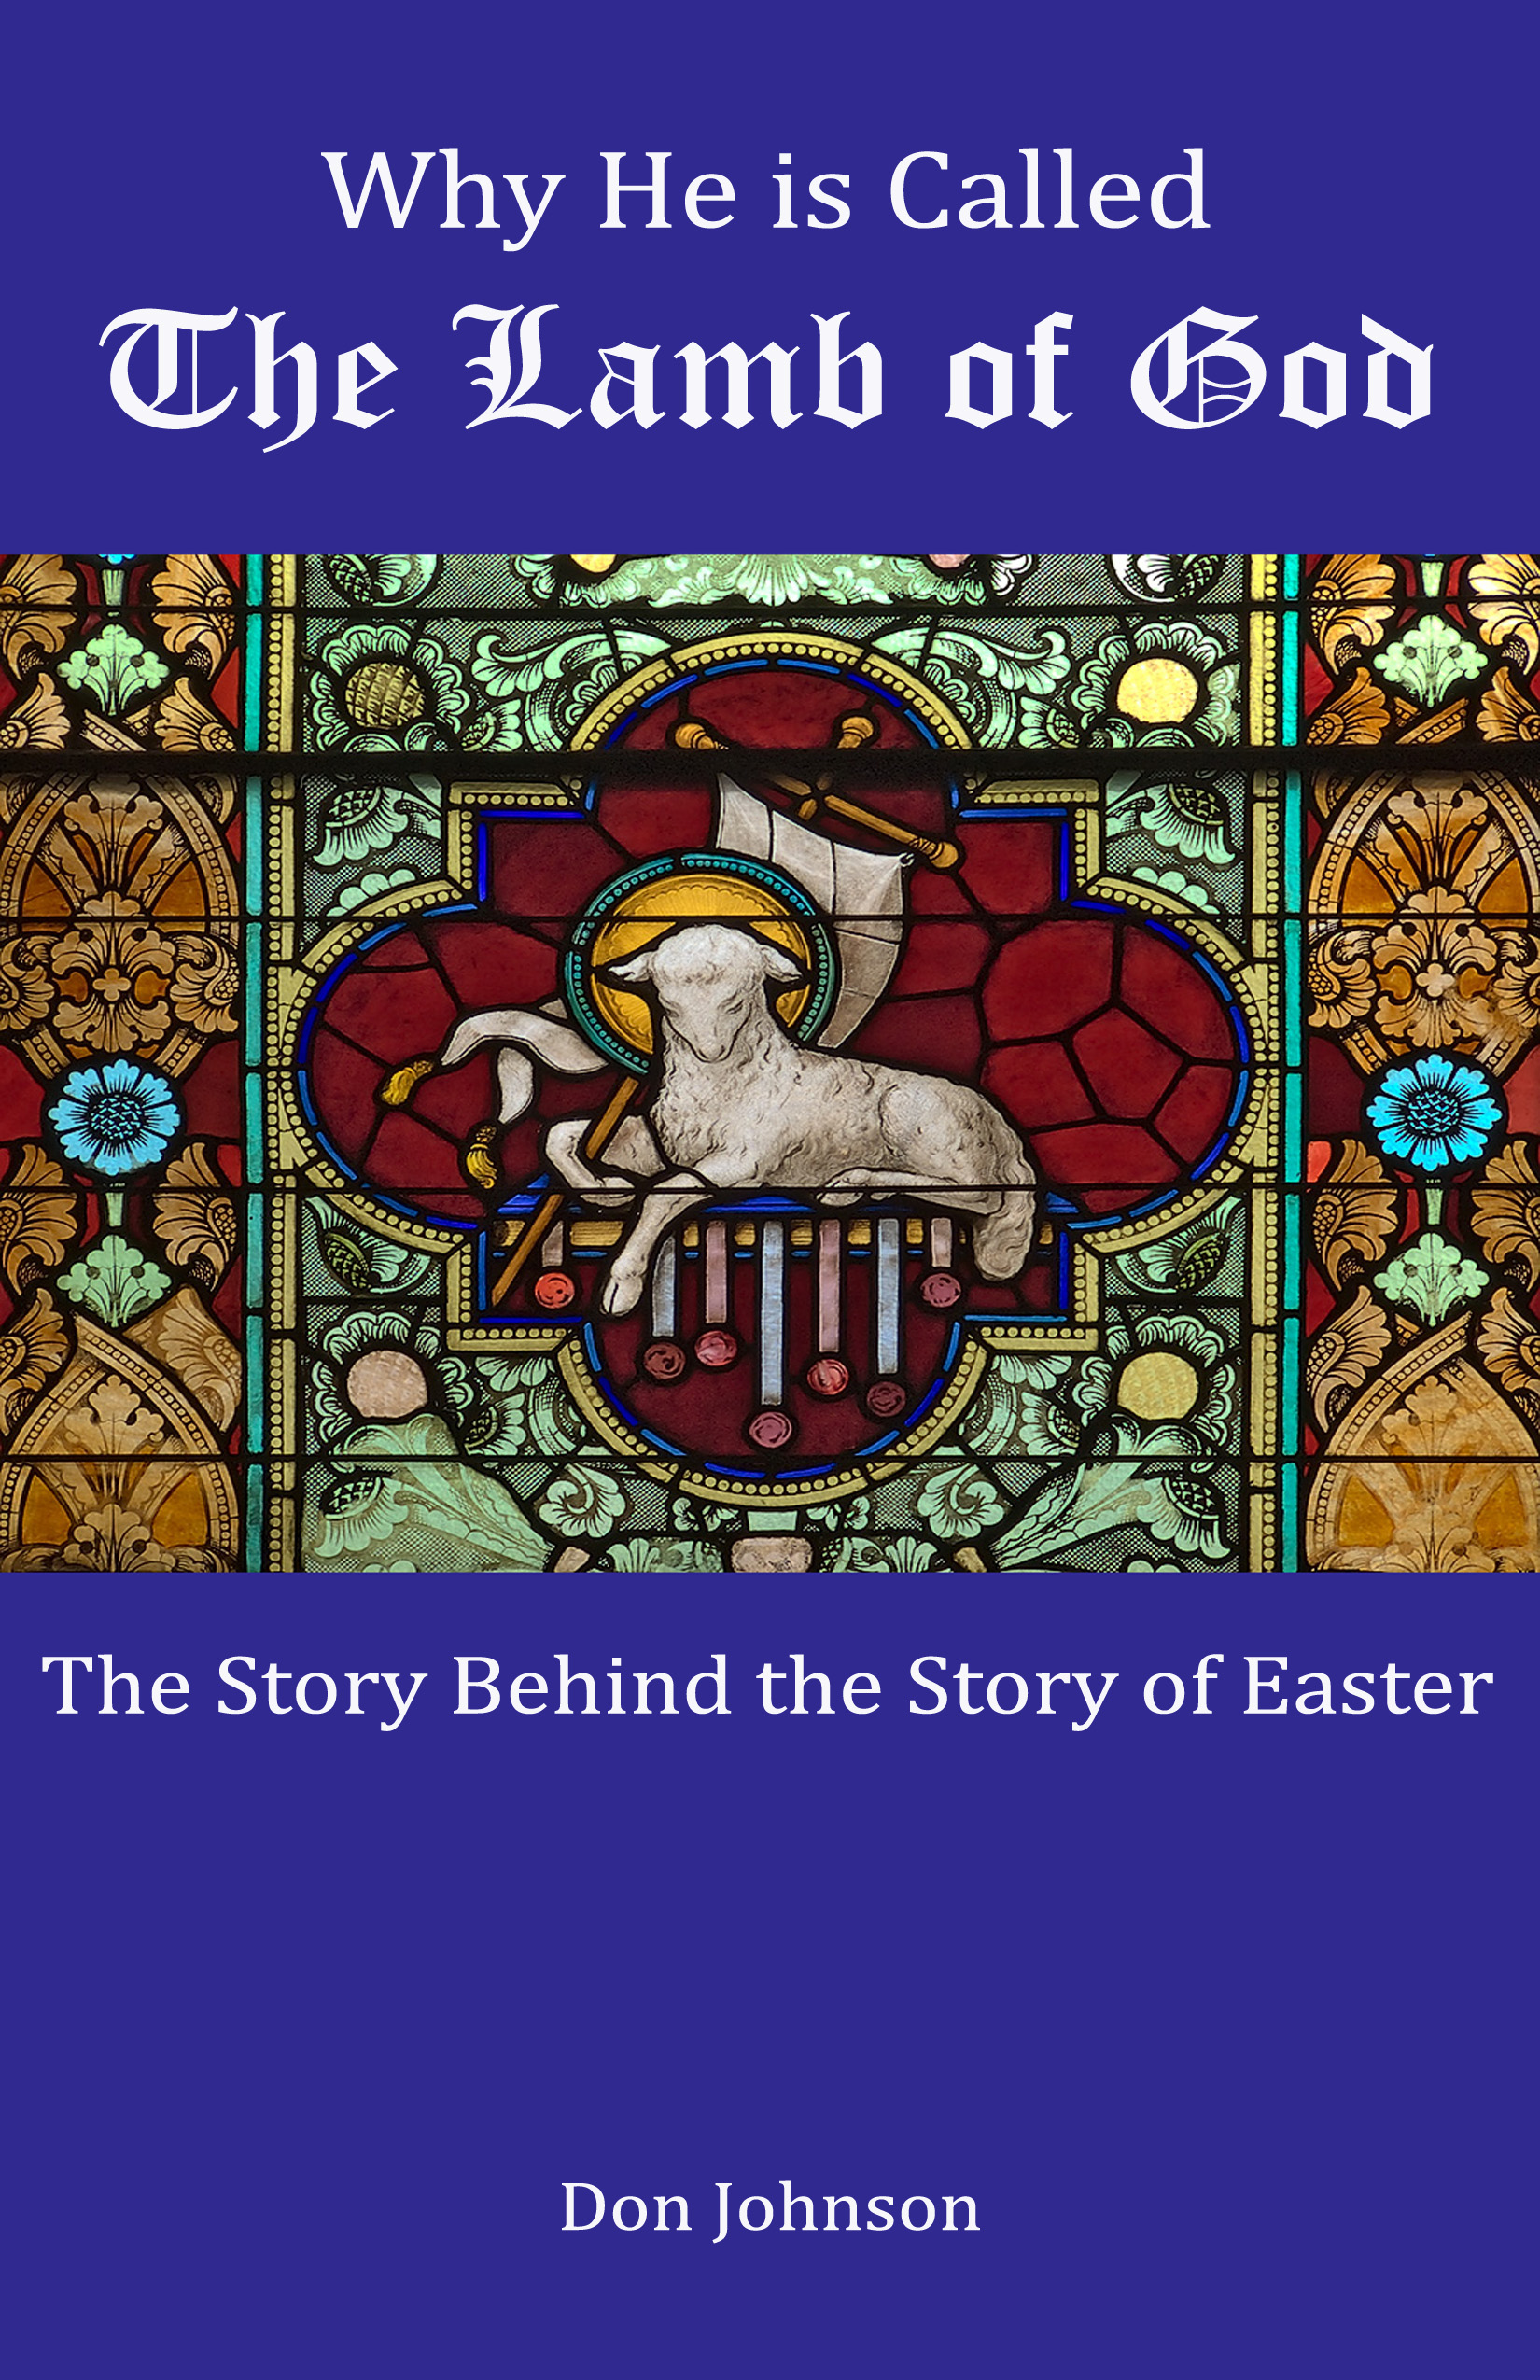 Why He is Called the Lamb of God: The Story Behind the Story of Easter